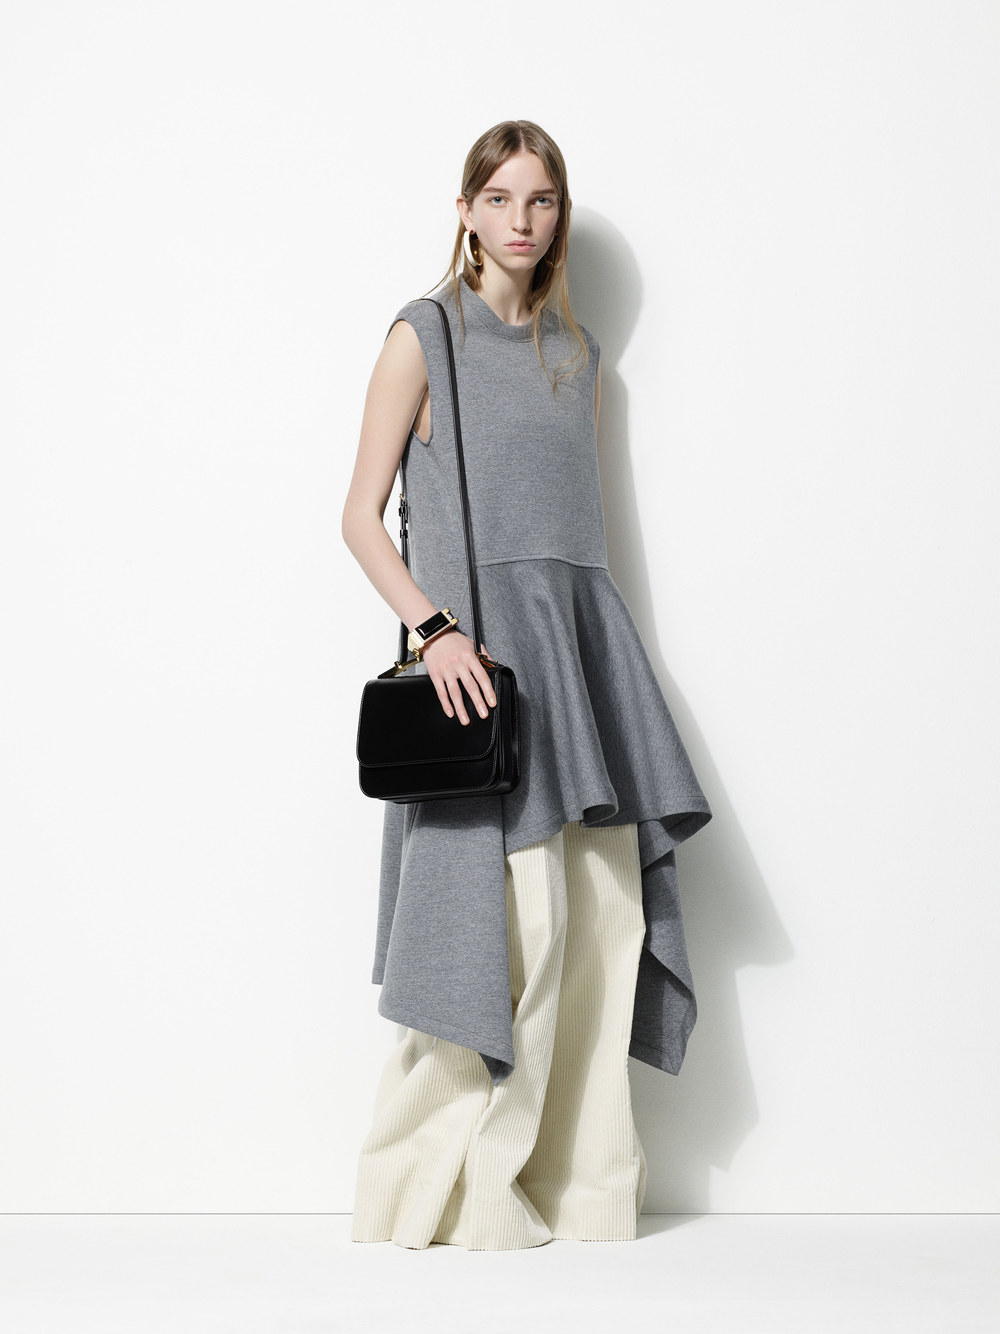 marni-pre-fall-2016-lookbook-17.jpg